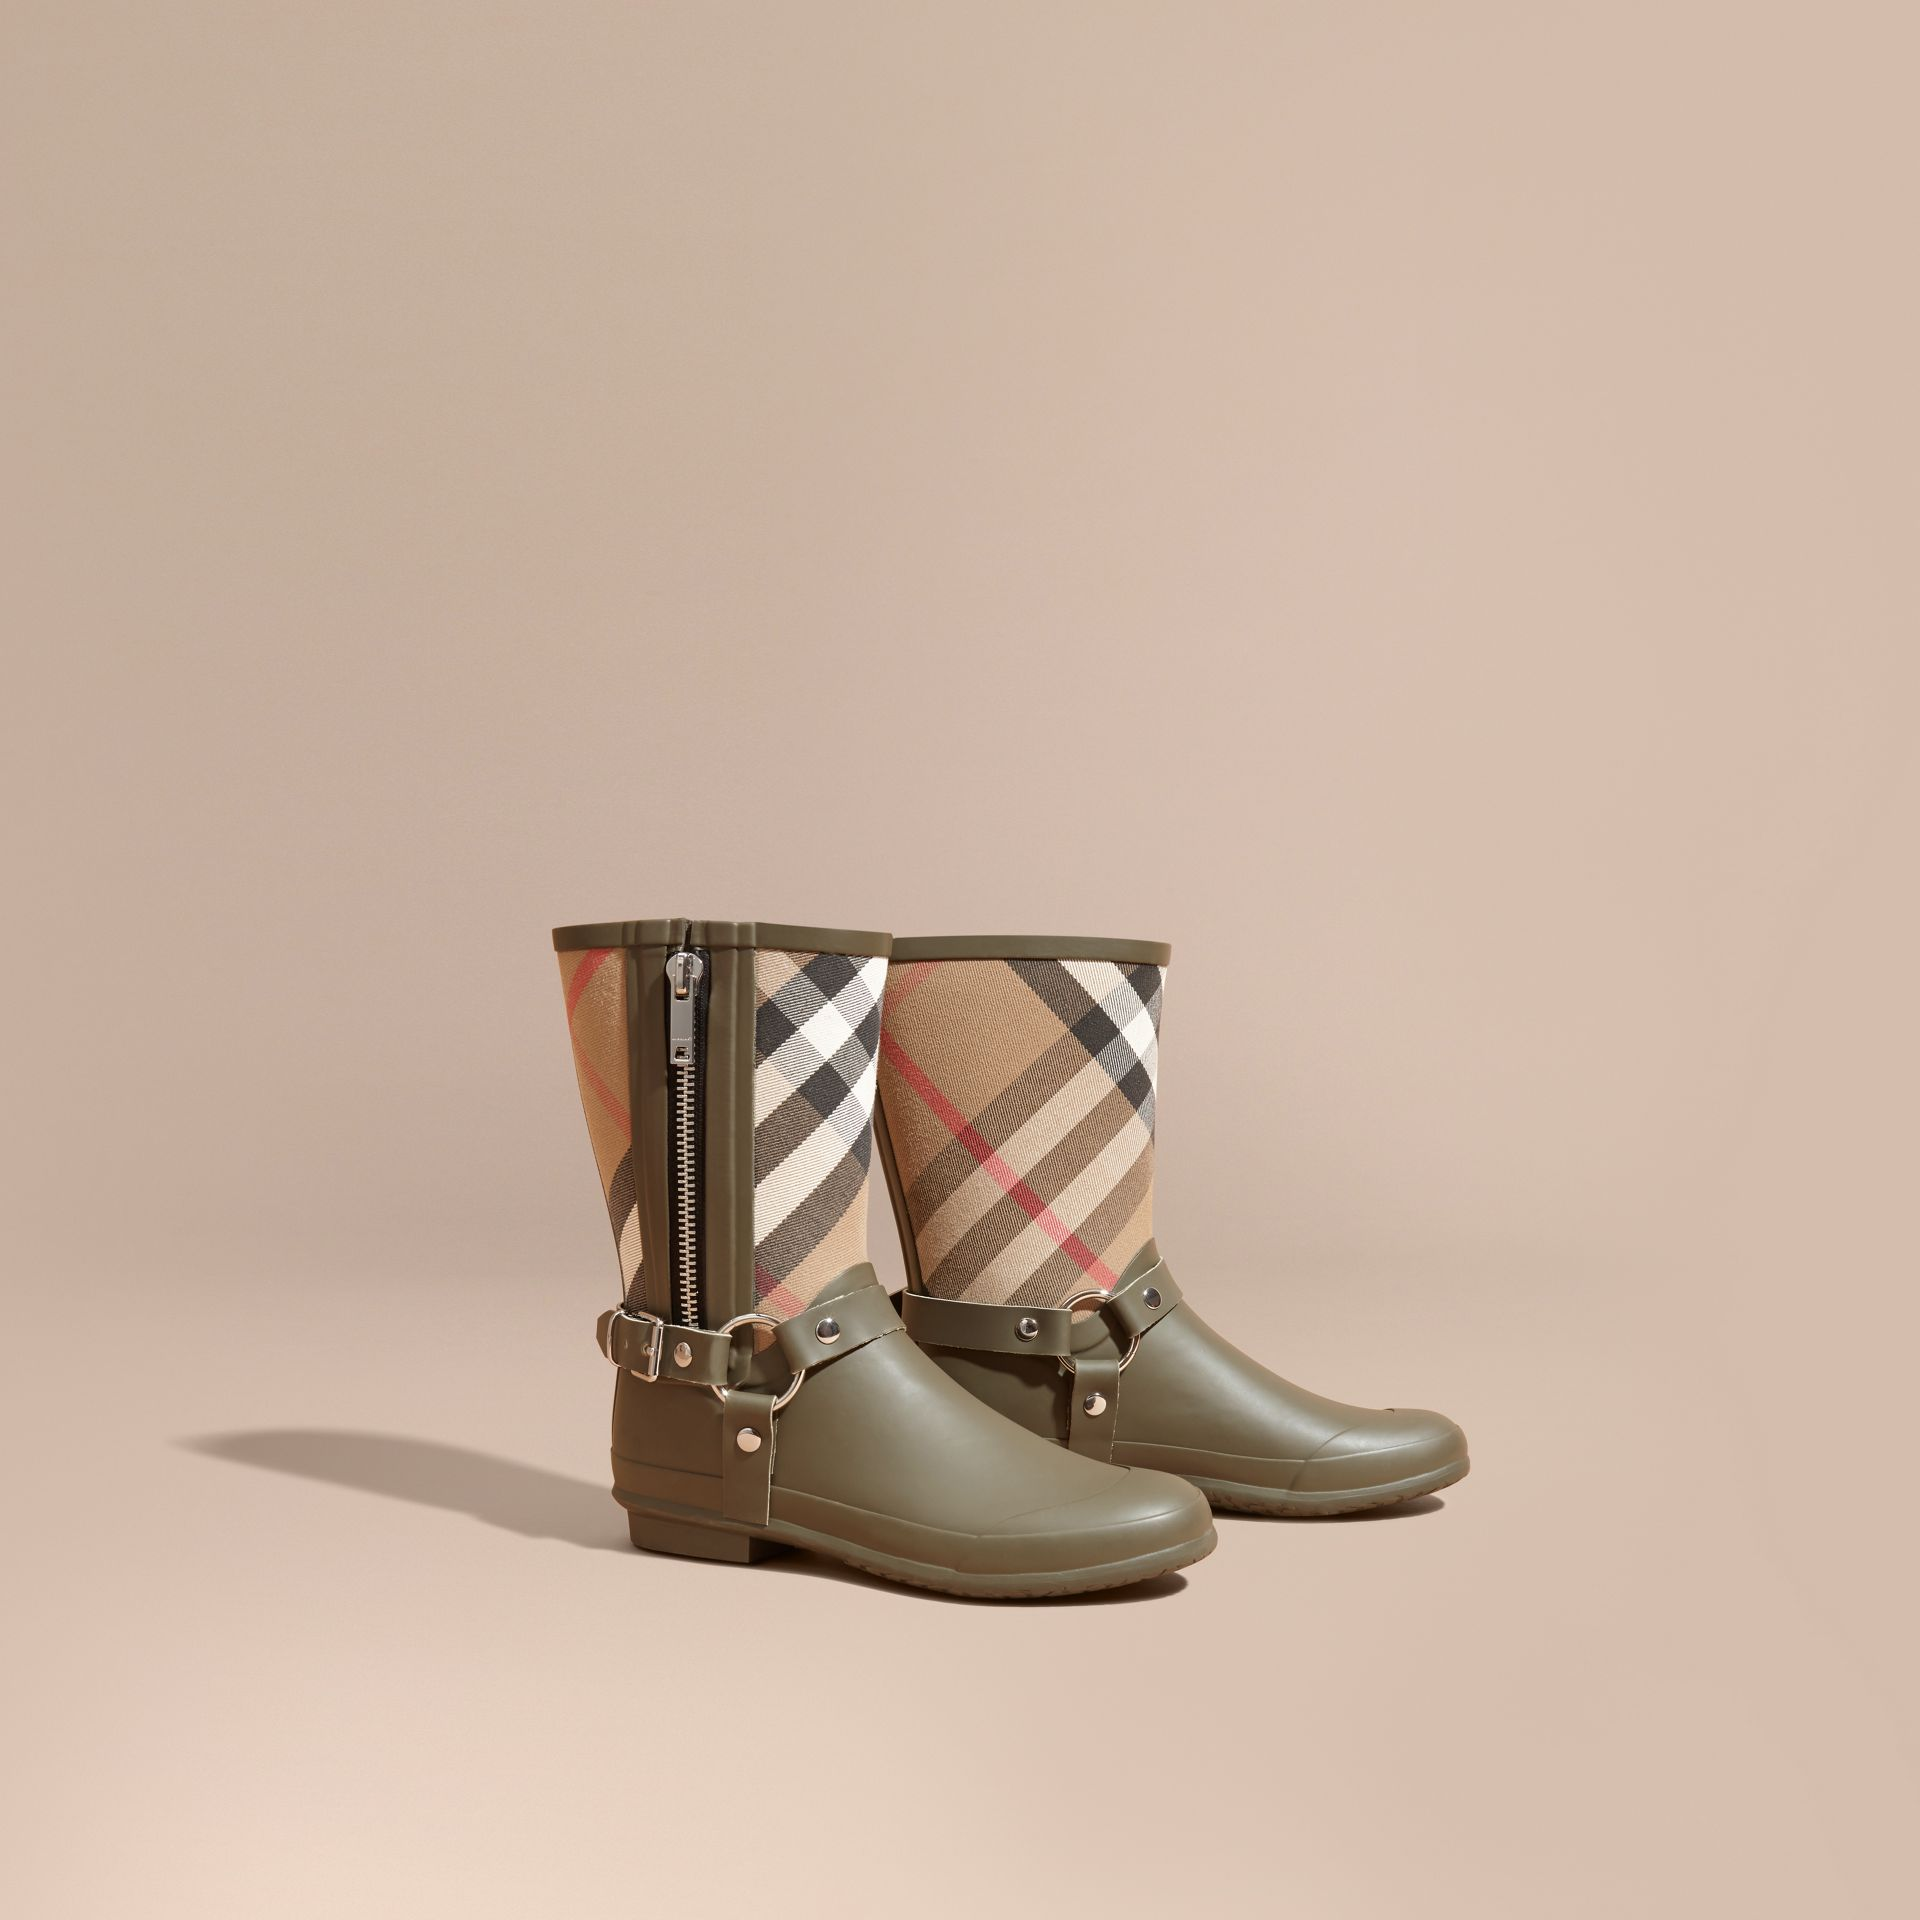 House check/military green Buckle and Strap Detail Check Rain Boots House Check/military Green - gallery image 1